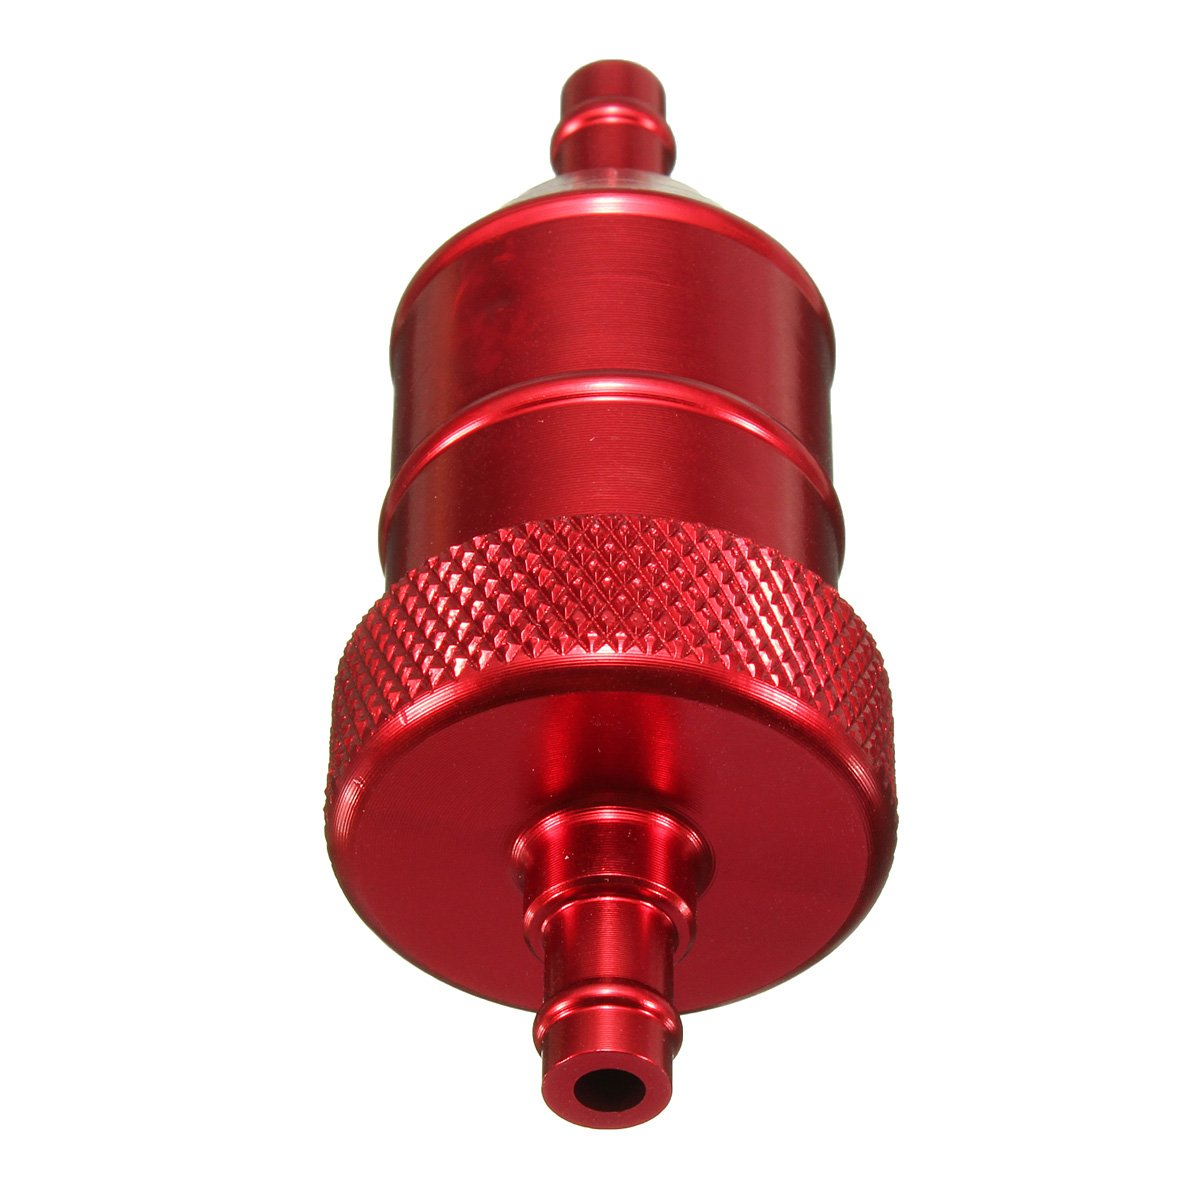 moto Fuel Filter - SODIAL(R) UNIVERSAL 6MM 1/4' MOTORCYCLE MOTORBIKE SCOOTER QUAD PIT BIKE CNC FUEL FILTER -Red 060891A4